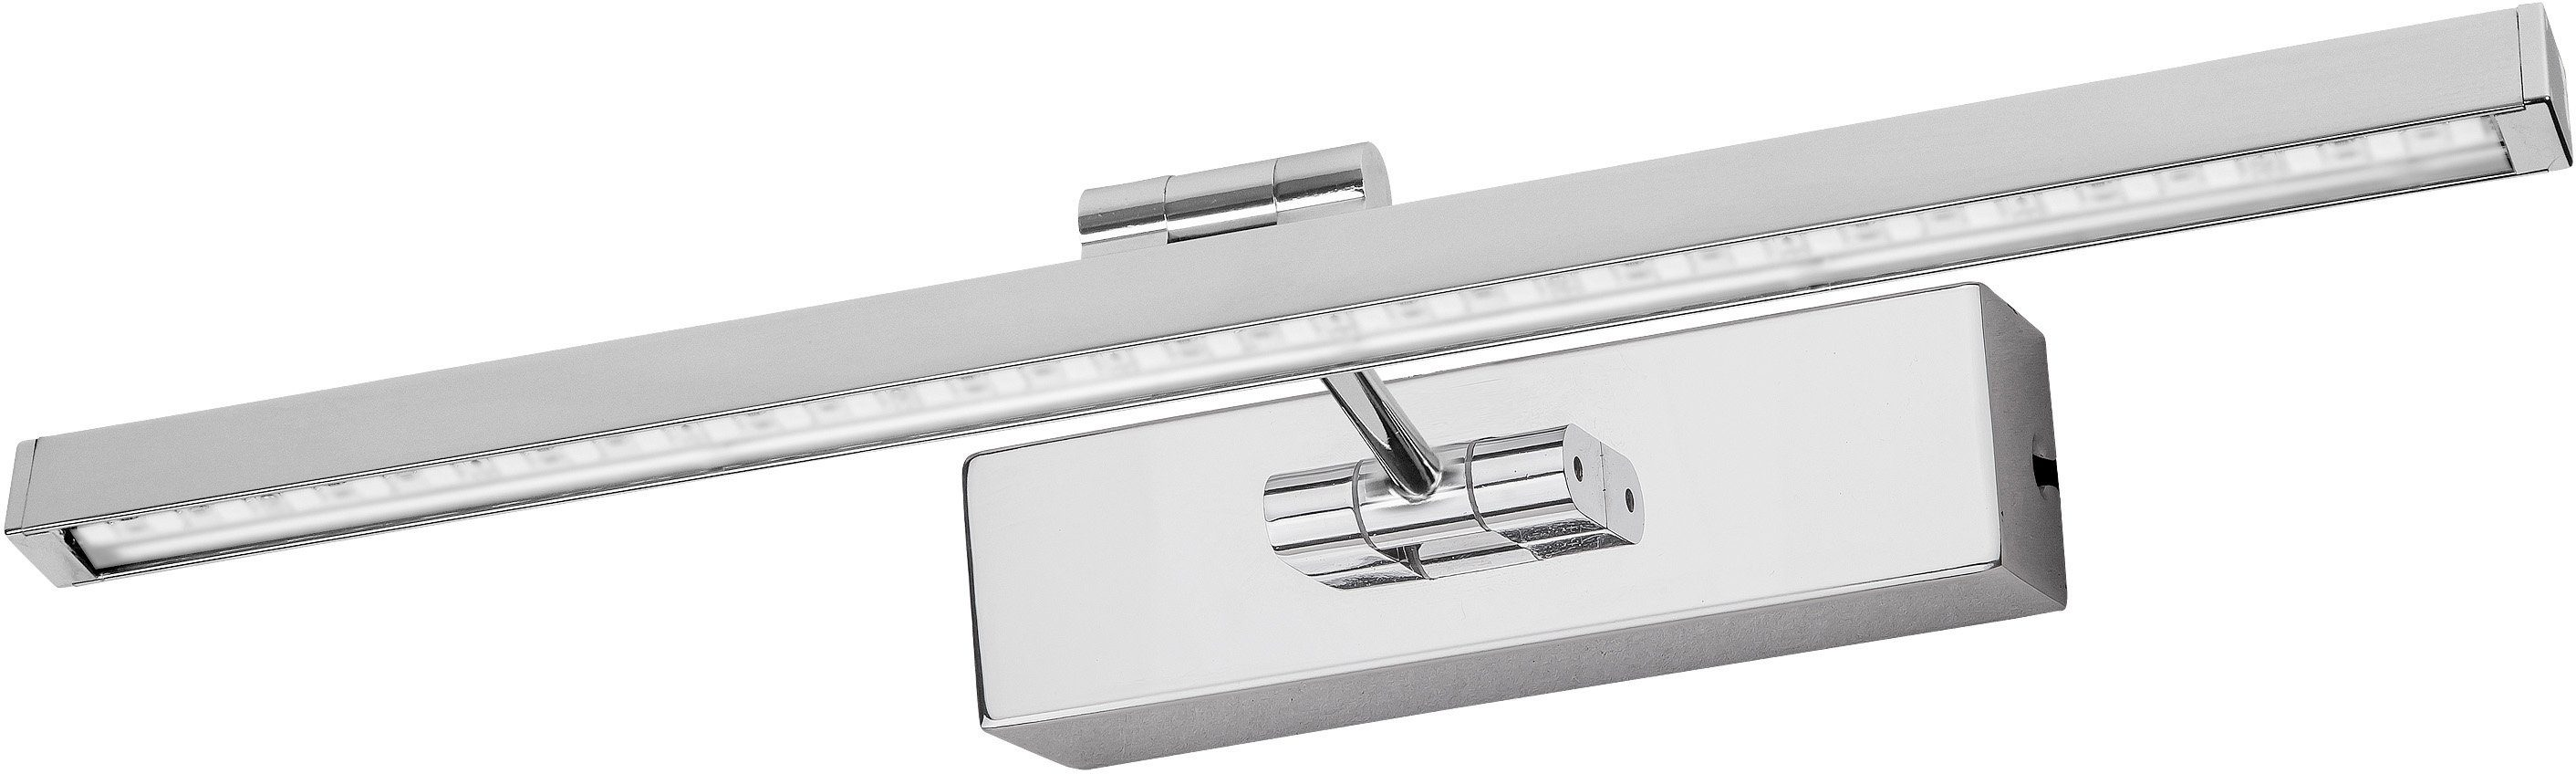 RABALUX LED-Wandleuche, »Picture Guard«